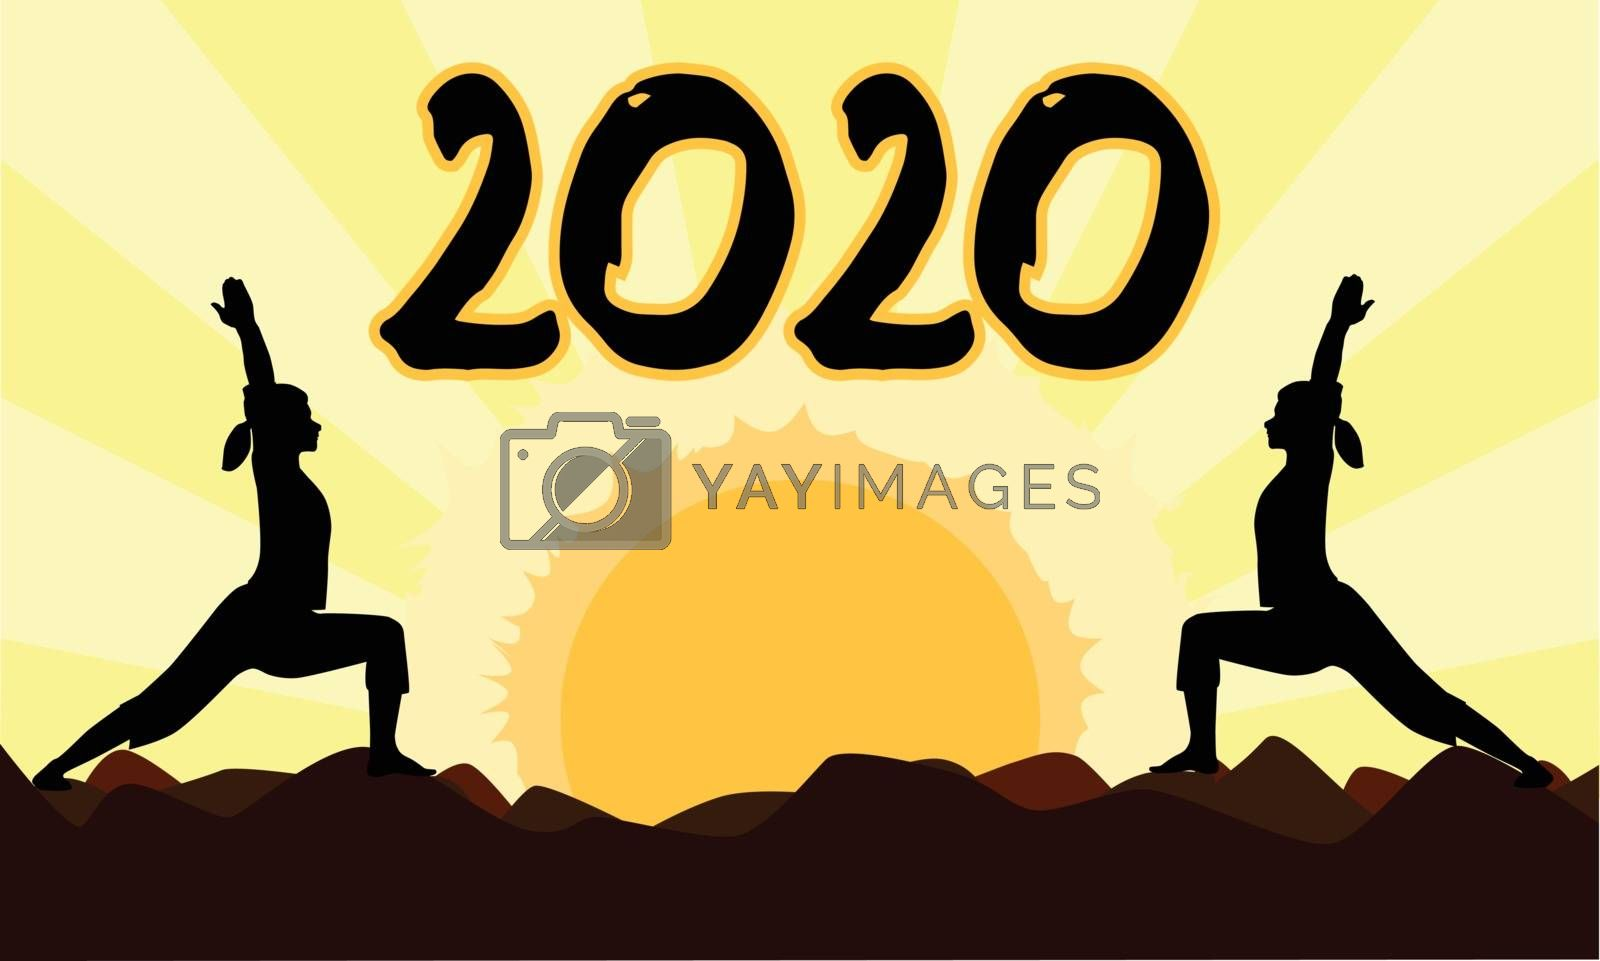 Yoga At Sunset 2020 by HomeSteadDigital